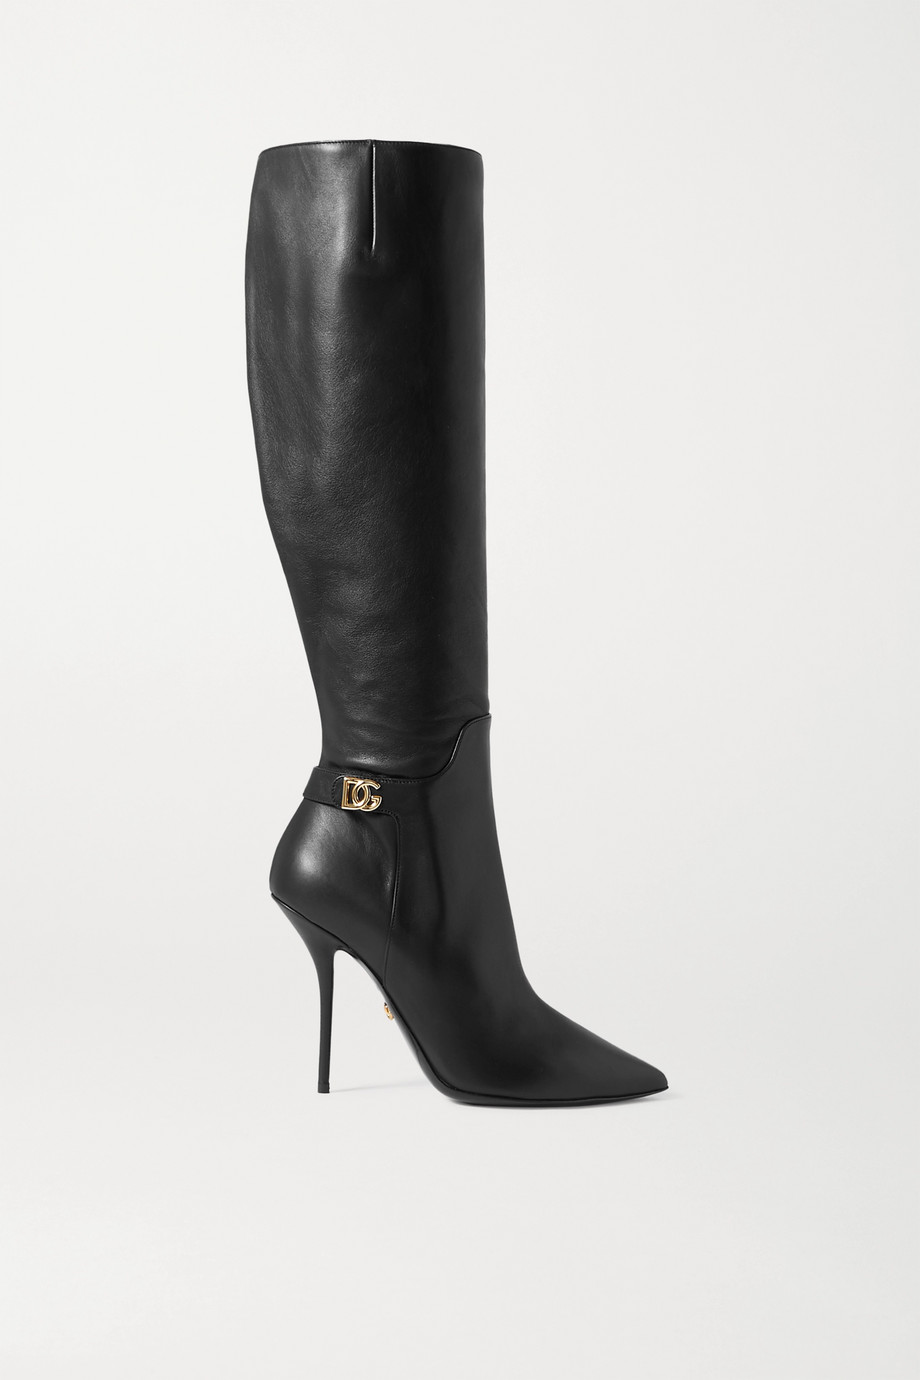 Dolce & Gabbana Logo-embellished leather knee boots